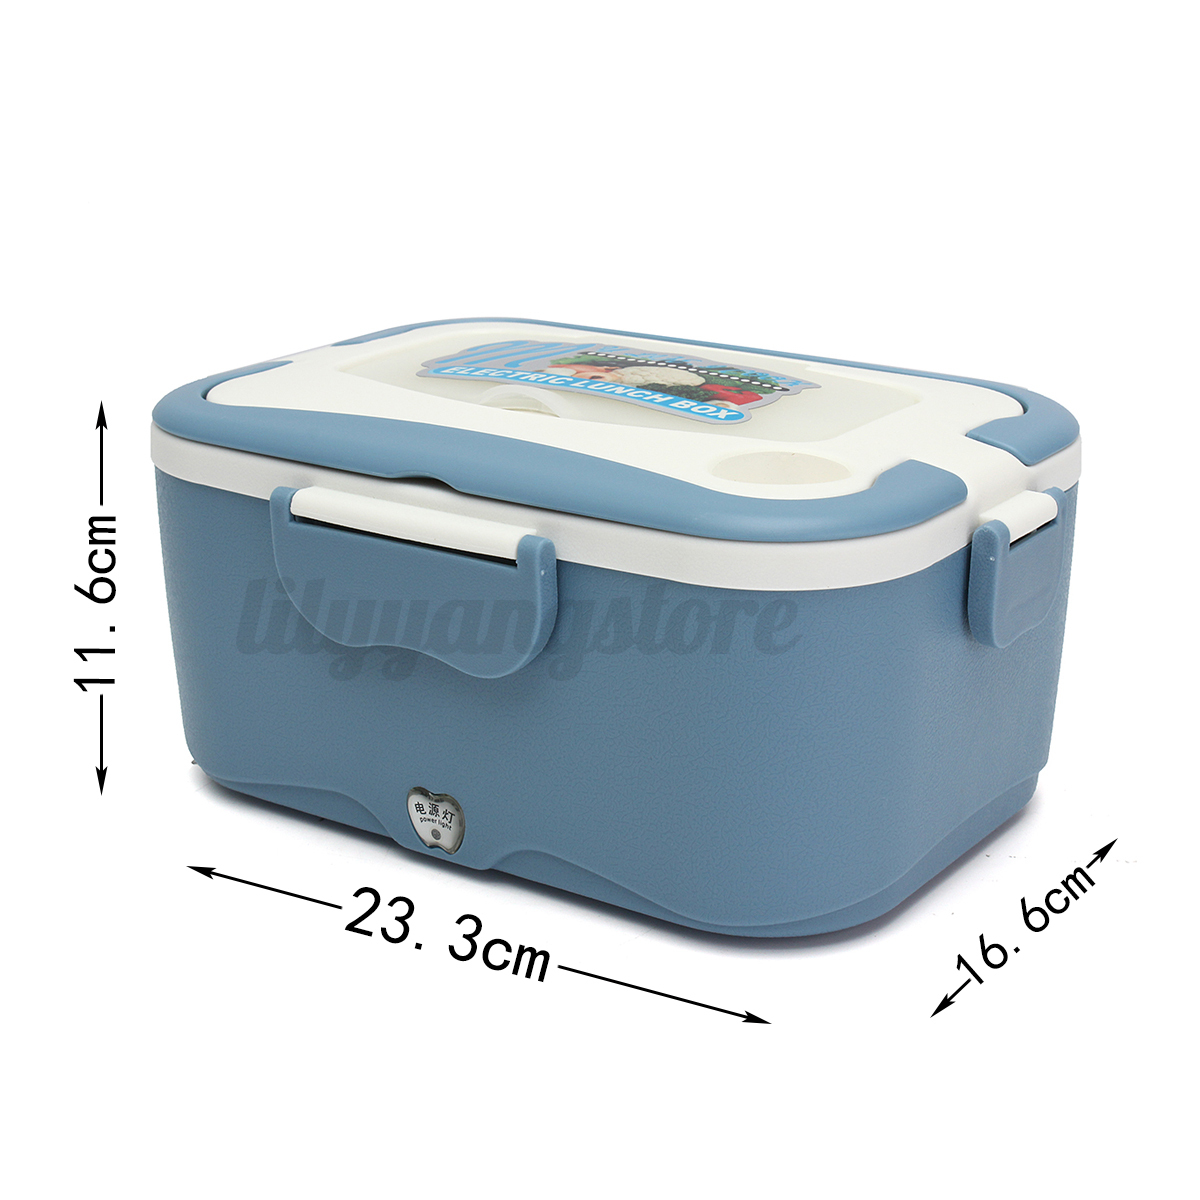 Portable 1 5l car plug electric heating lunch box food for Lunch box pas cher